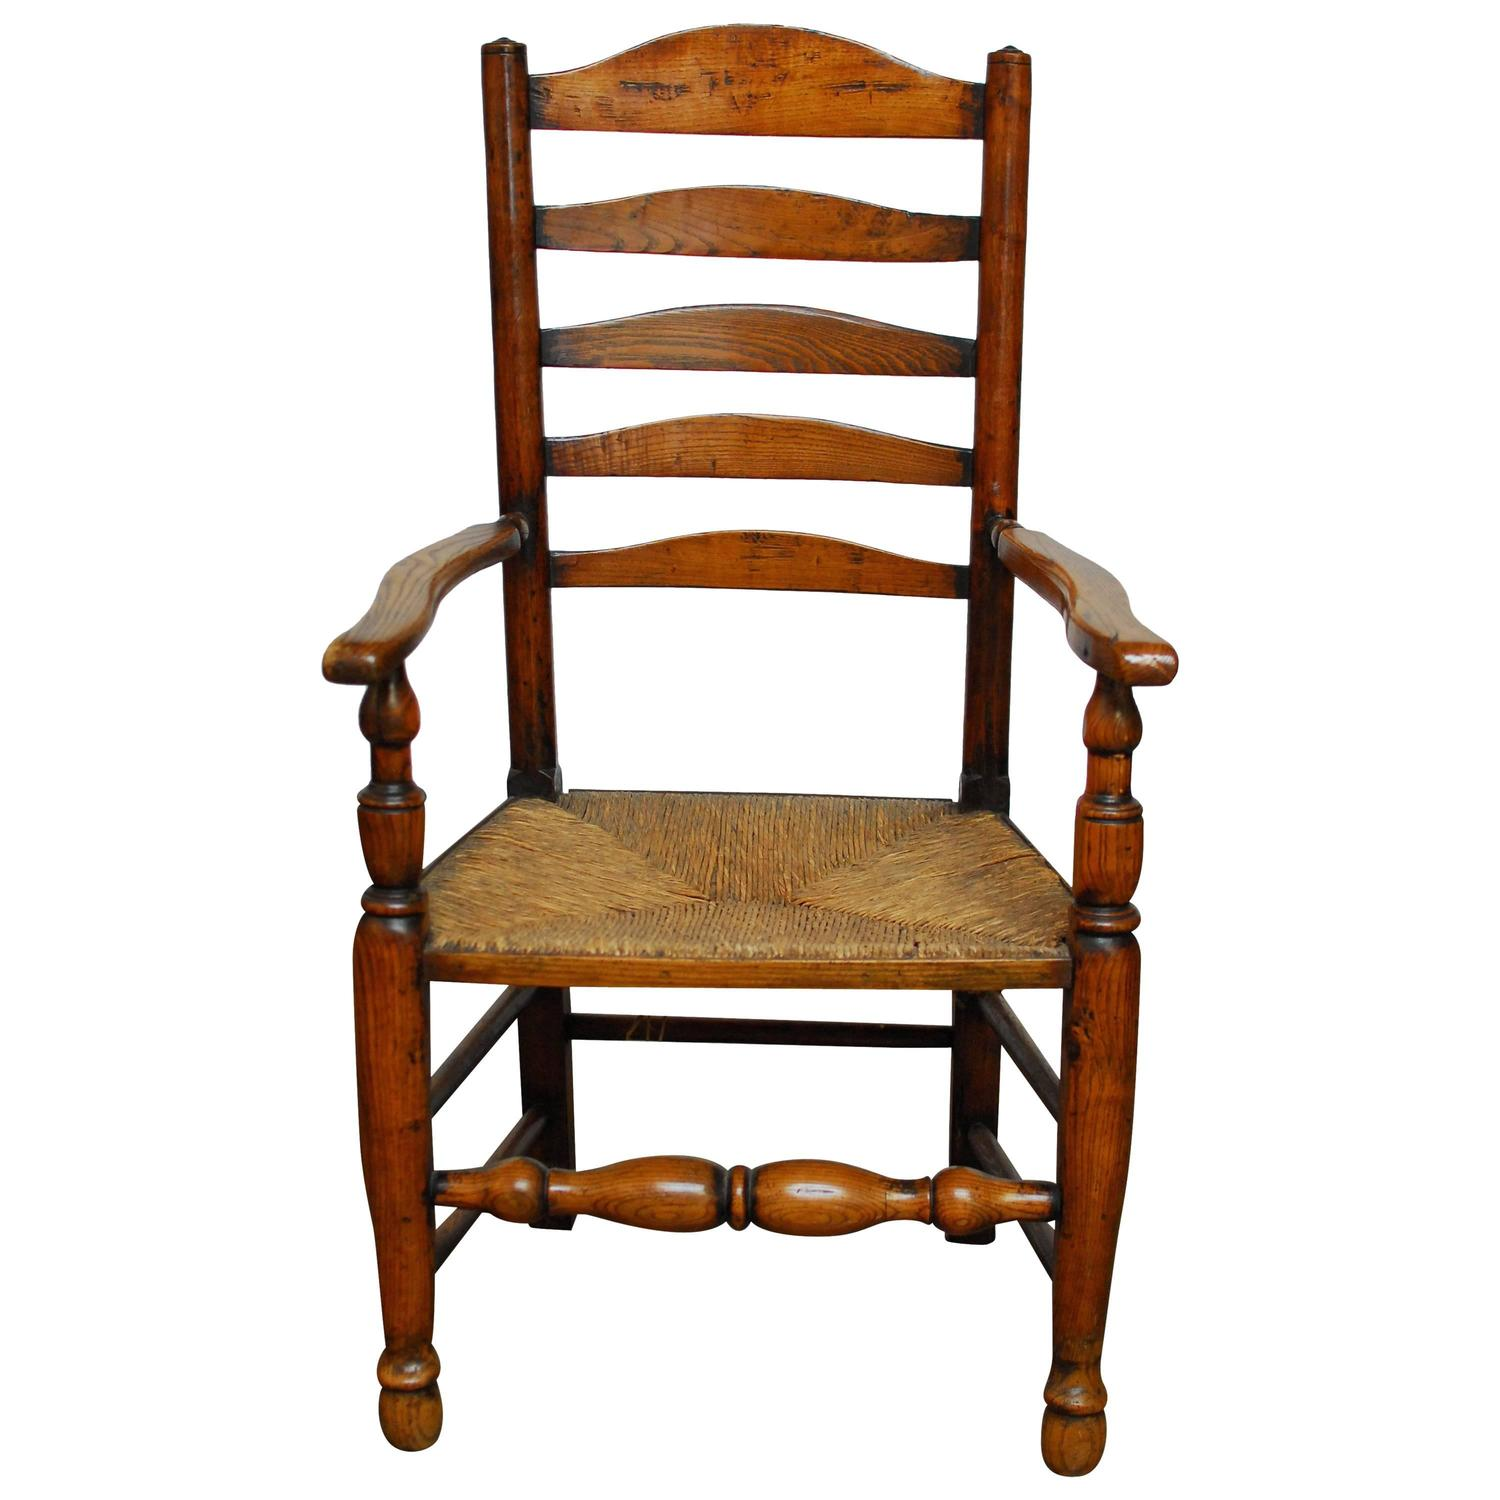 Merveilleux 19th Century English Ladder Back Chair For Sale At 1stdibs